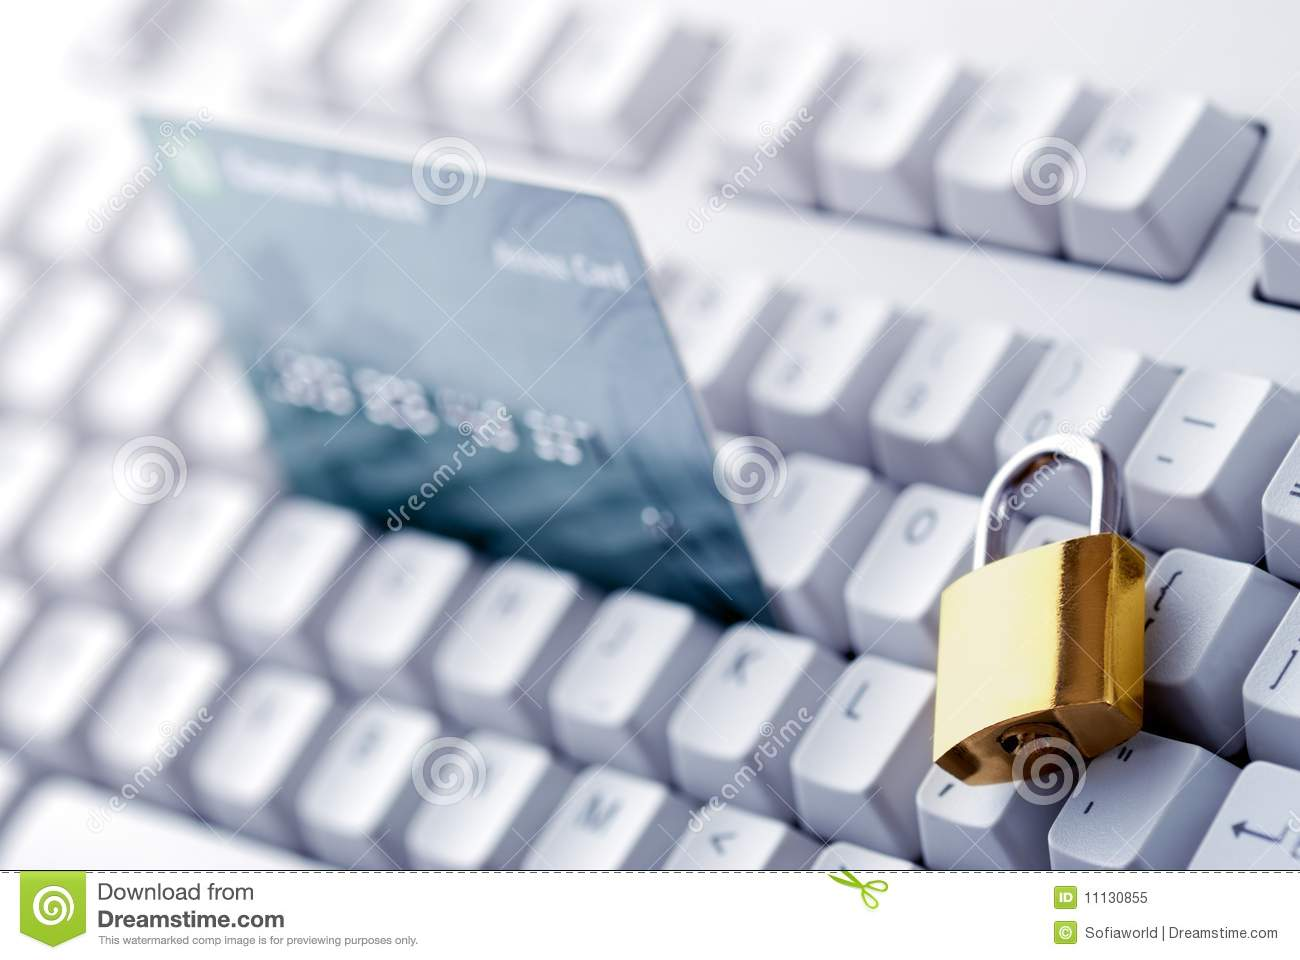 how to make online banking secure